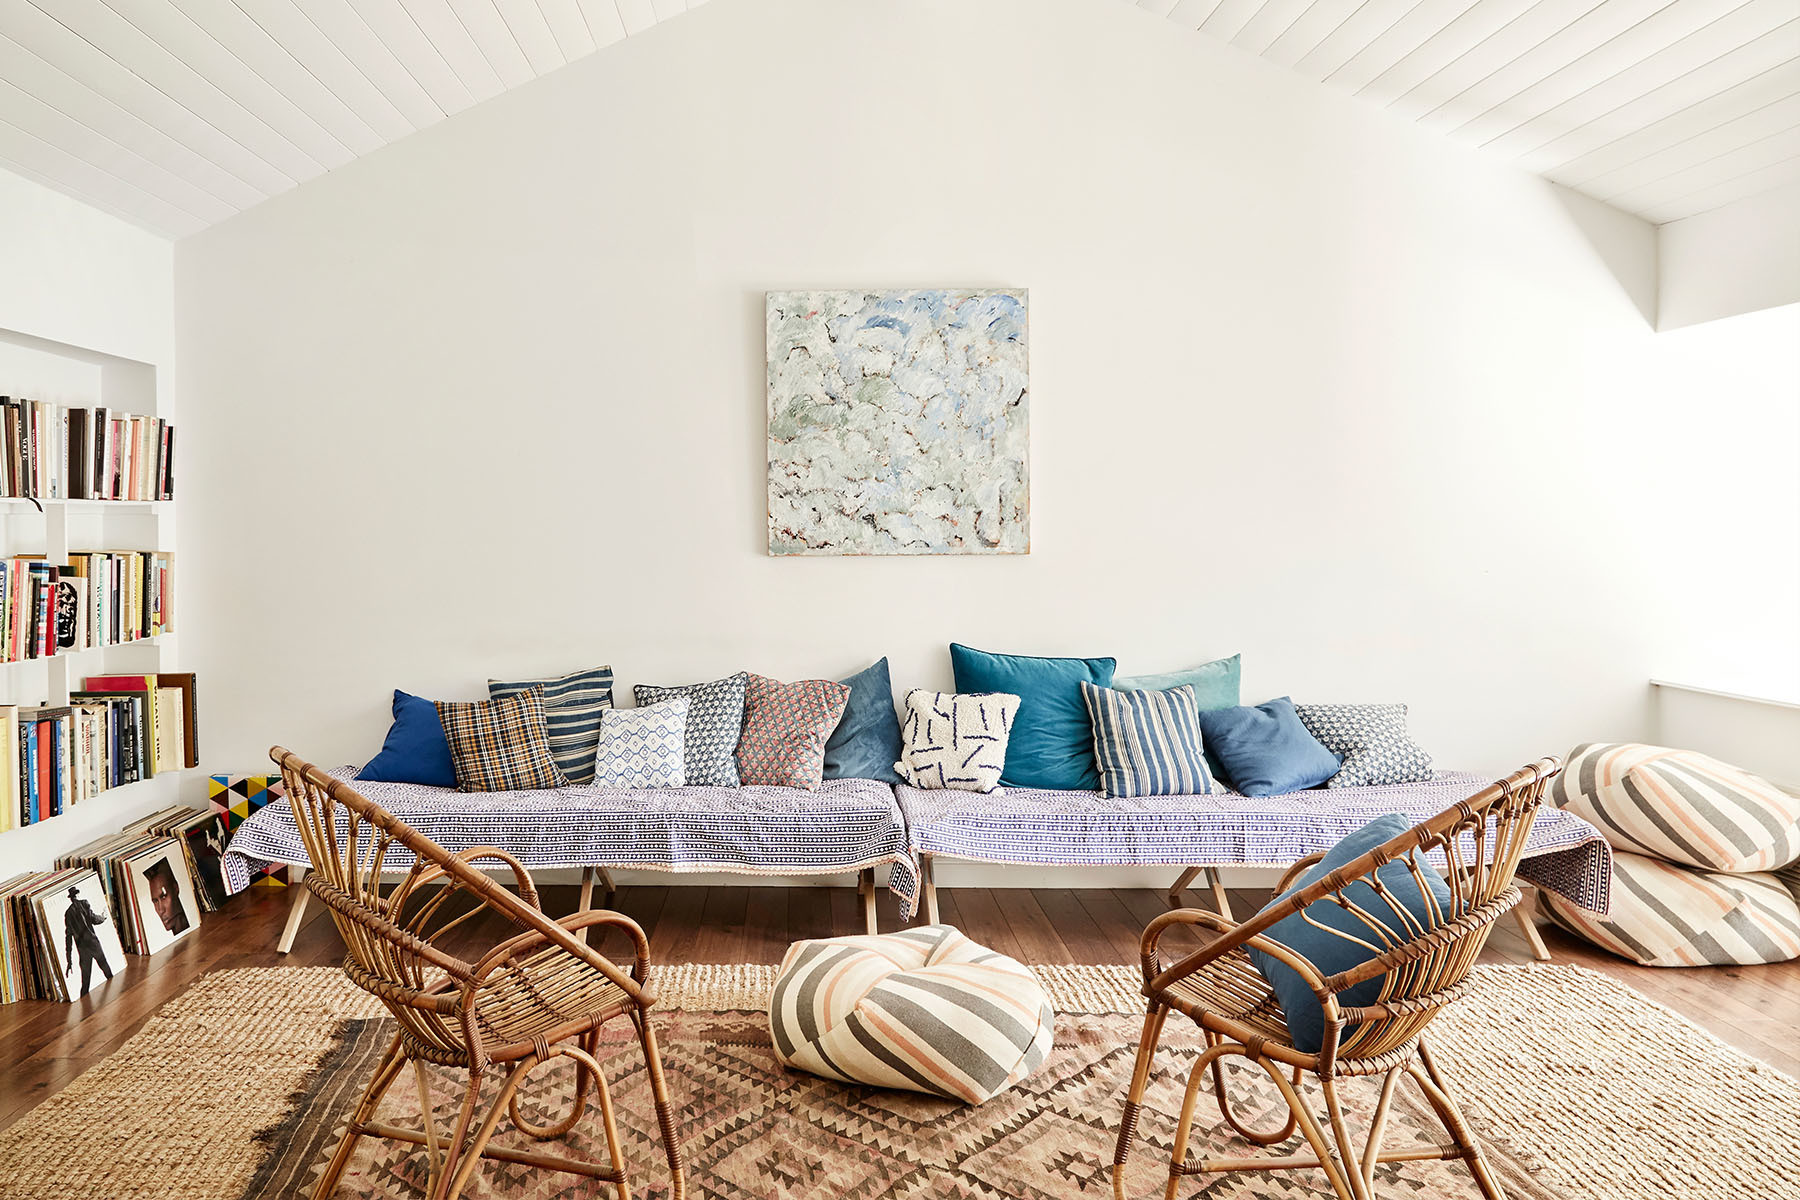 Peaked Tudor ceilings are now painted gallery white. Vintage Army Cots | Kantha Quilts | Urban Outfitters Ottoman | Serena & Lily Armchairs | eBay Vintage Rug | Mary Phillips Artwork.